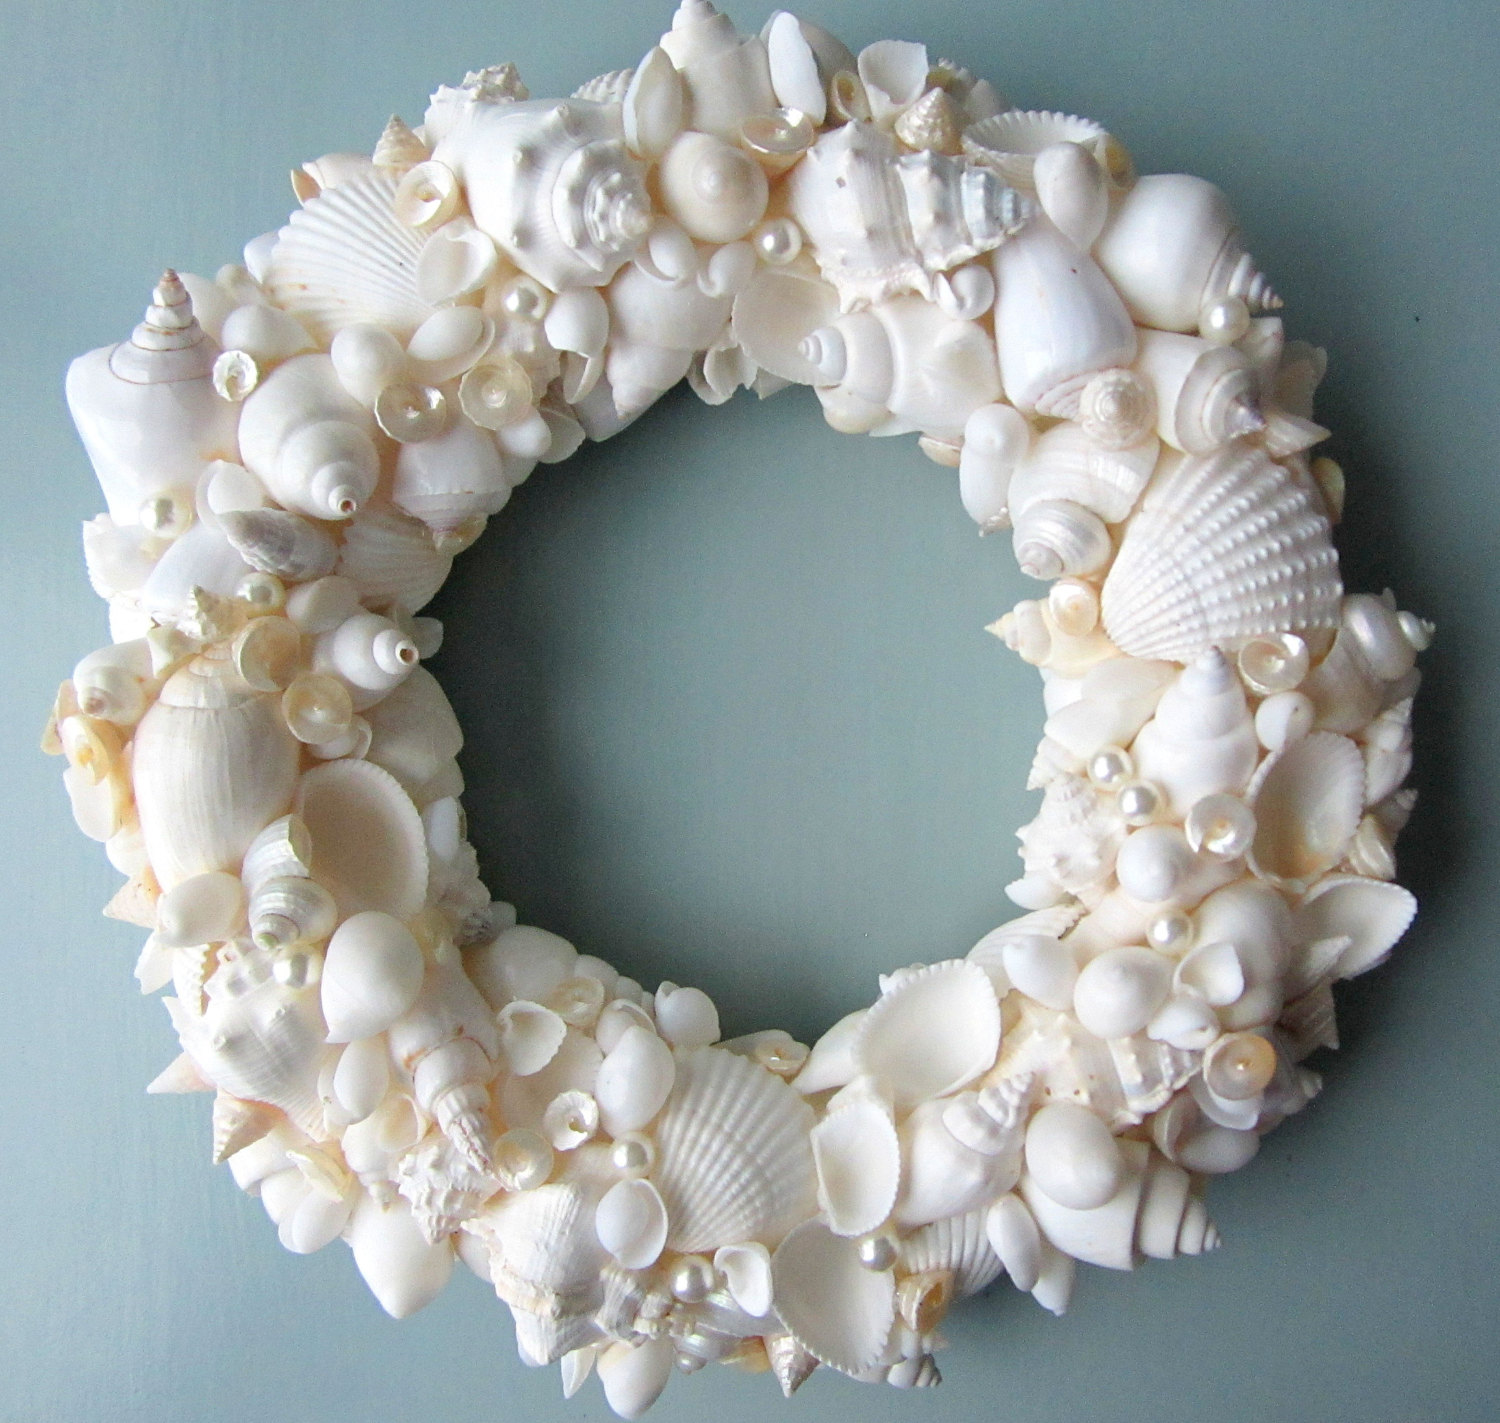 Seashell Wreaths In White On Blue Wall For Wall Decor Ideas